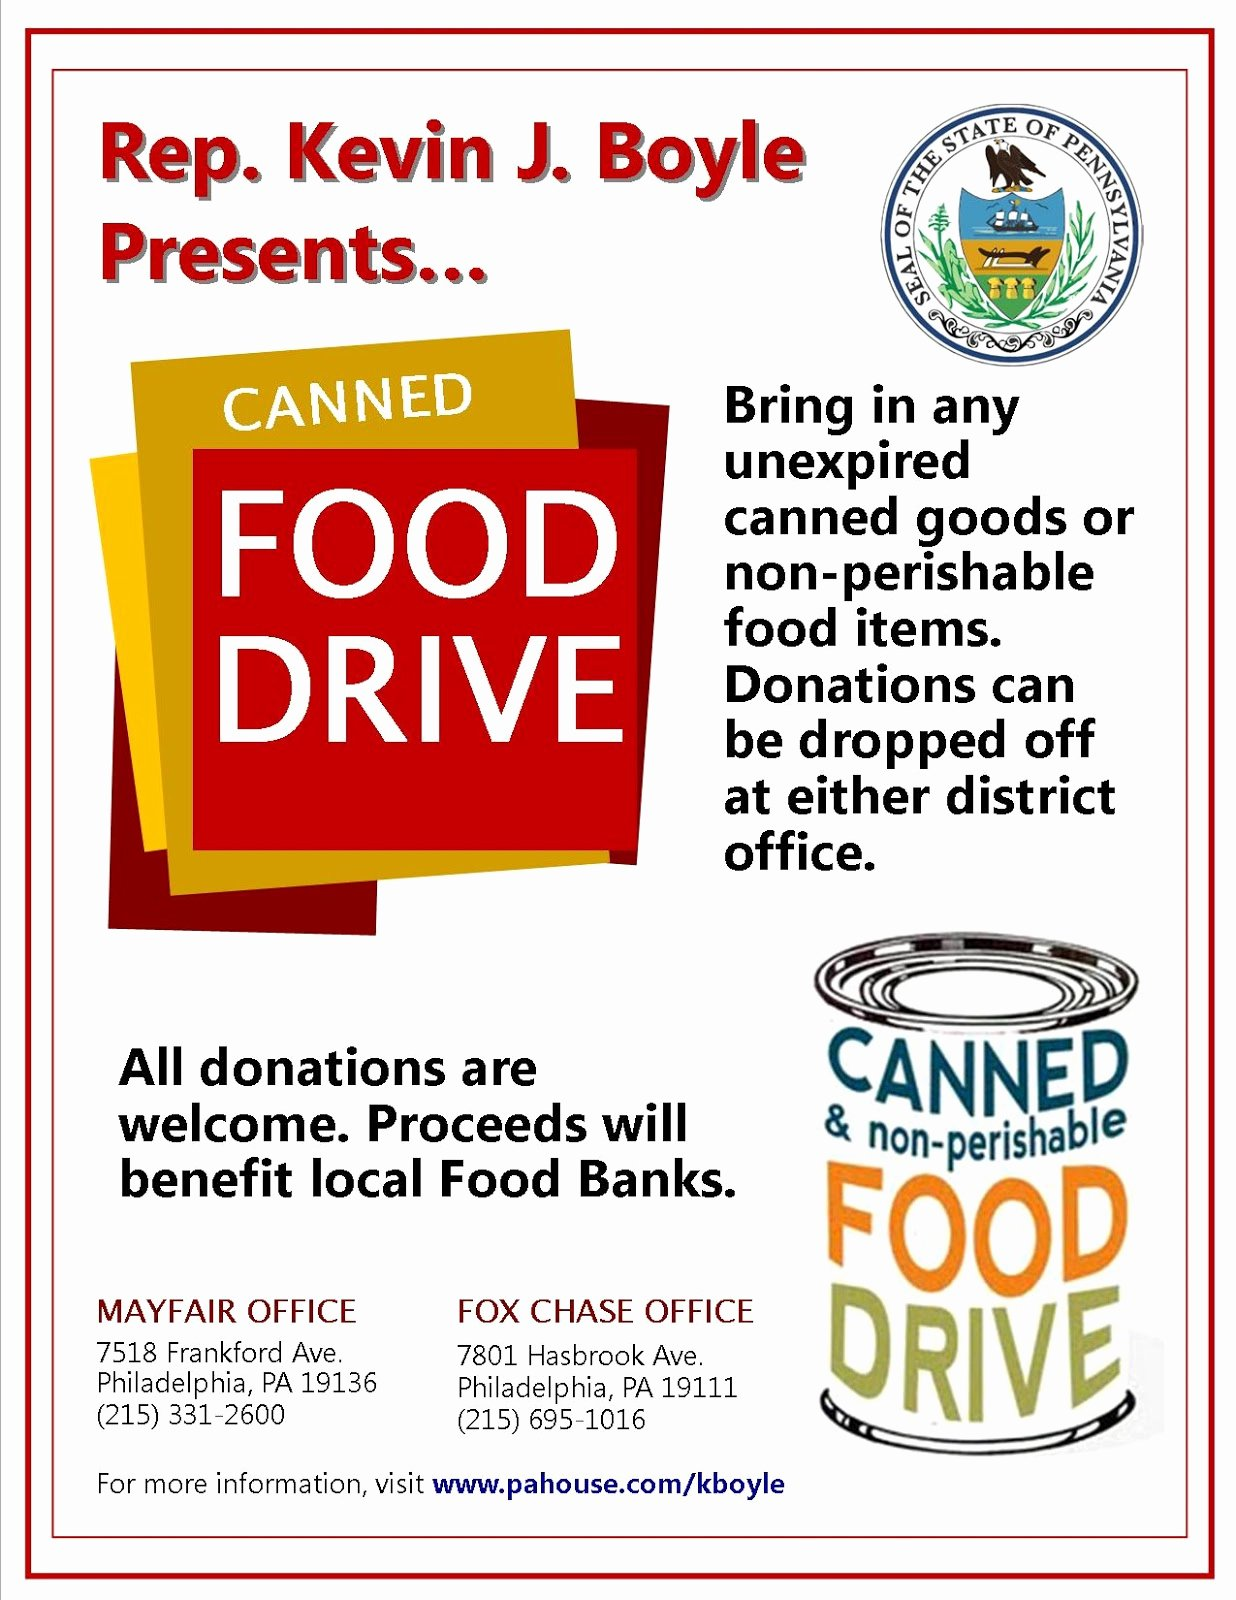 Food Drive Flyer Templates Cooper Design Space Our